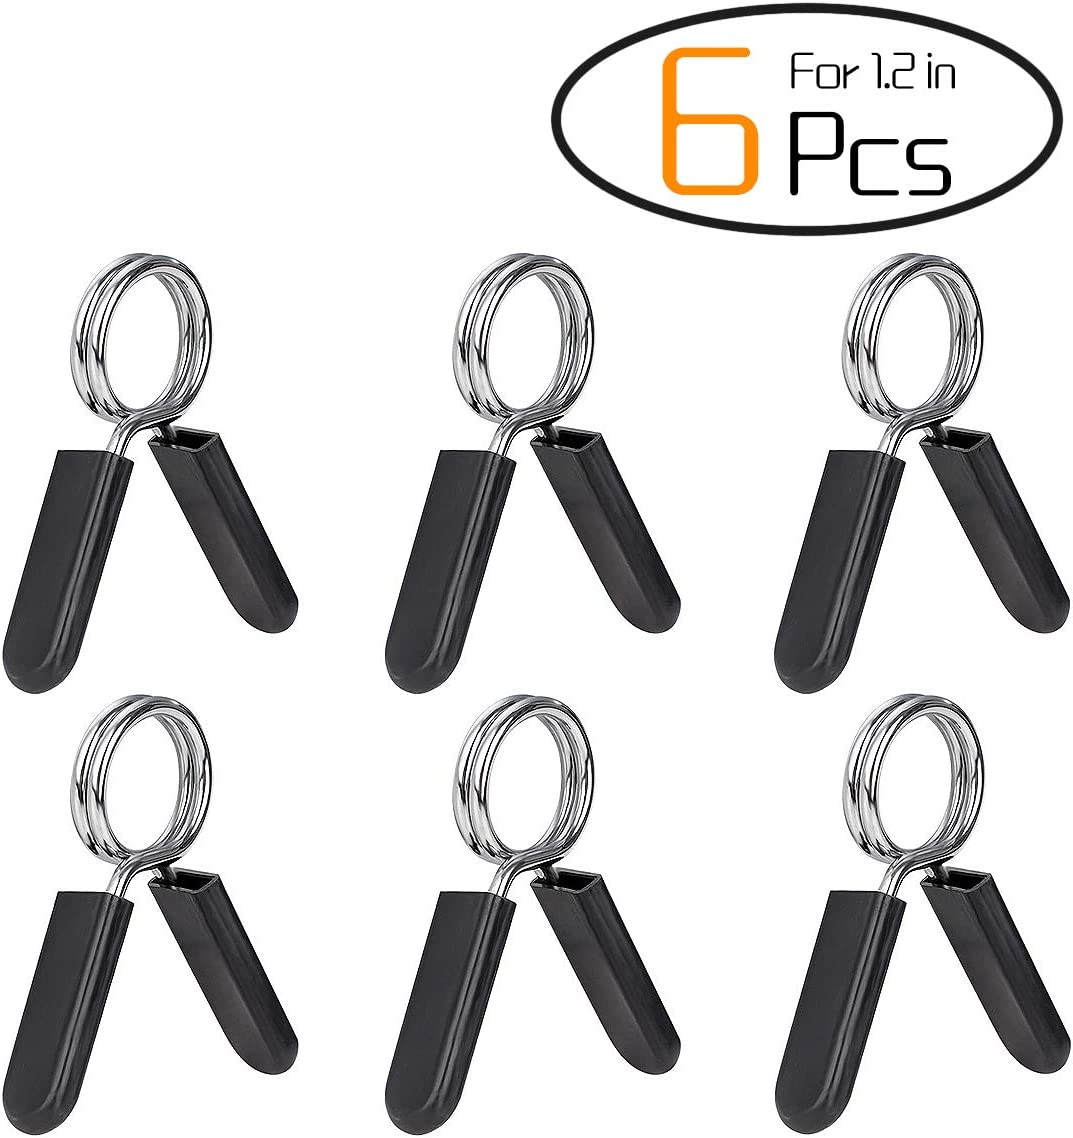 Weight Lifting Dumbbell Collar Olympic Barbell Spinlock Clips Gym Fitness Clamps suitable for barbell clips 30mm HNGEO Has many uses 1 Pair Diameter 1.2